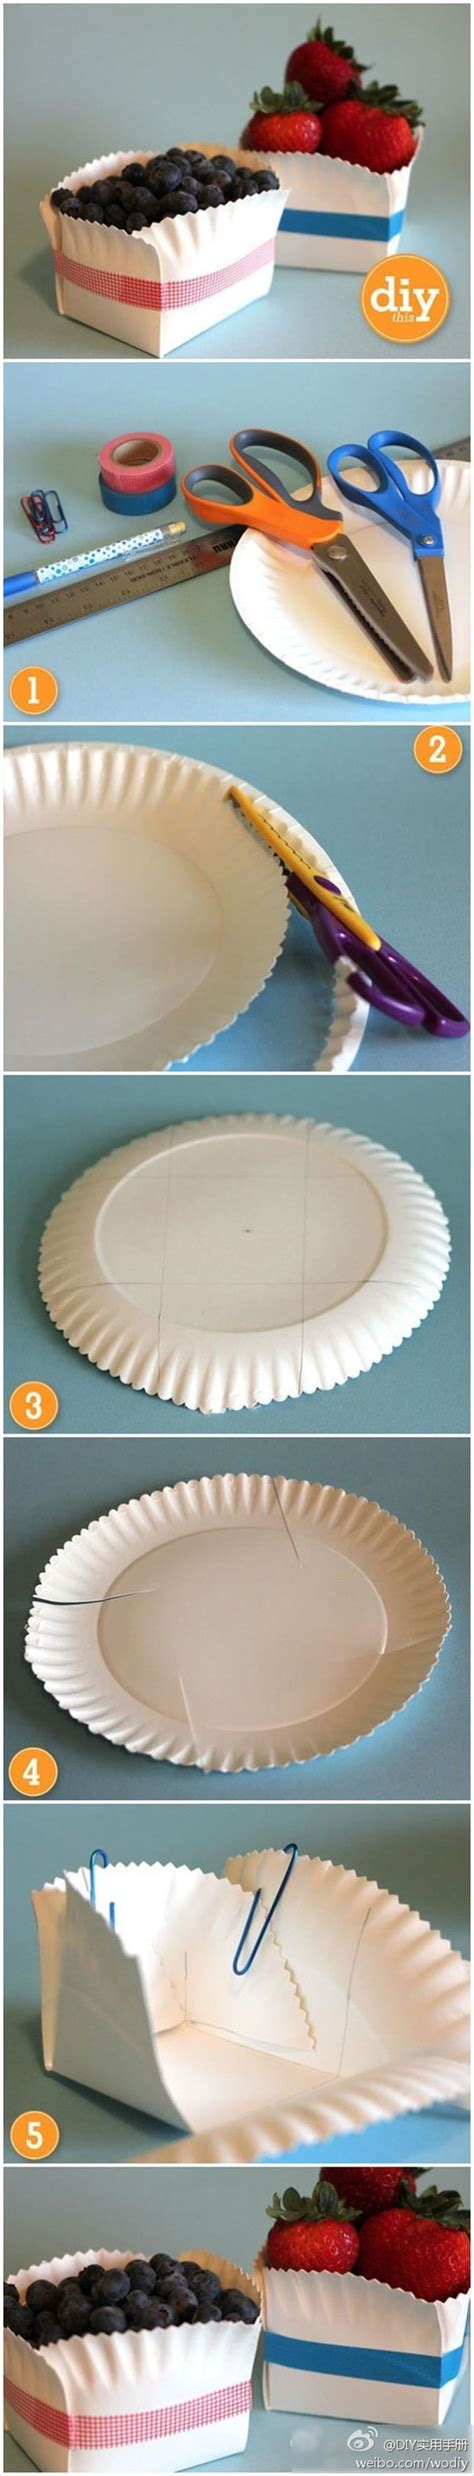 crafts out of paper plates make fruit baskets out of paper plates craft ideas